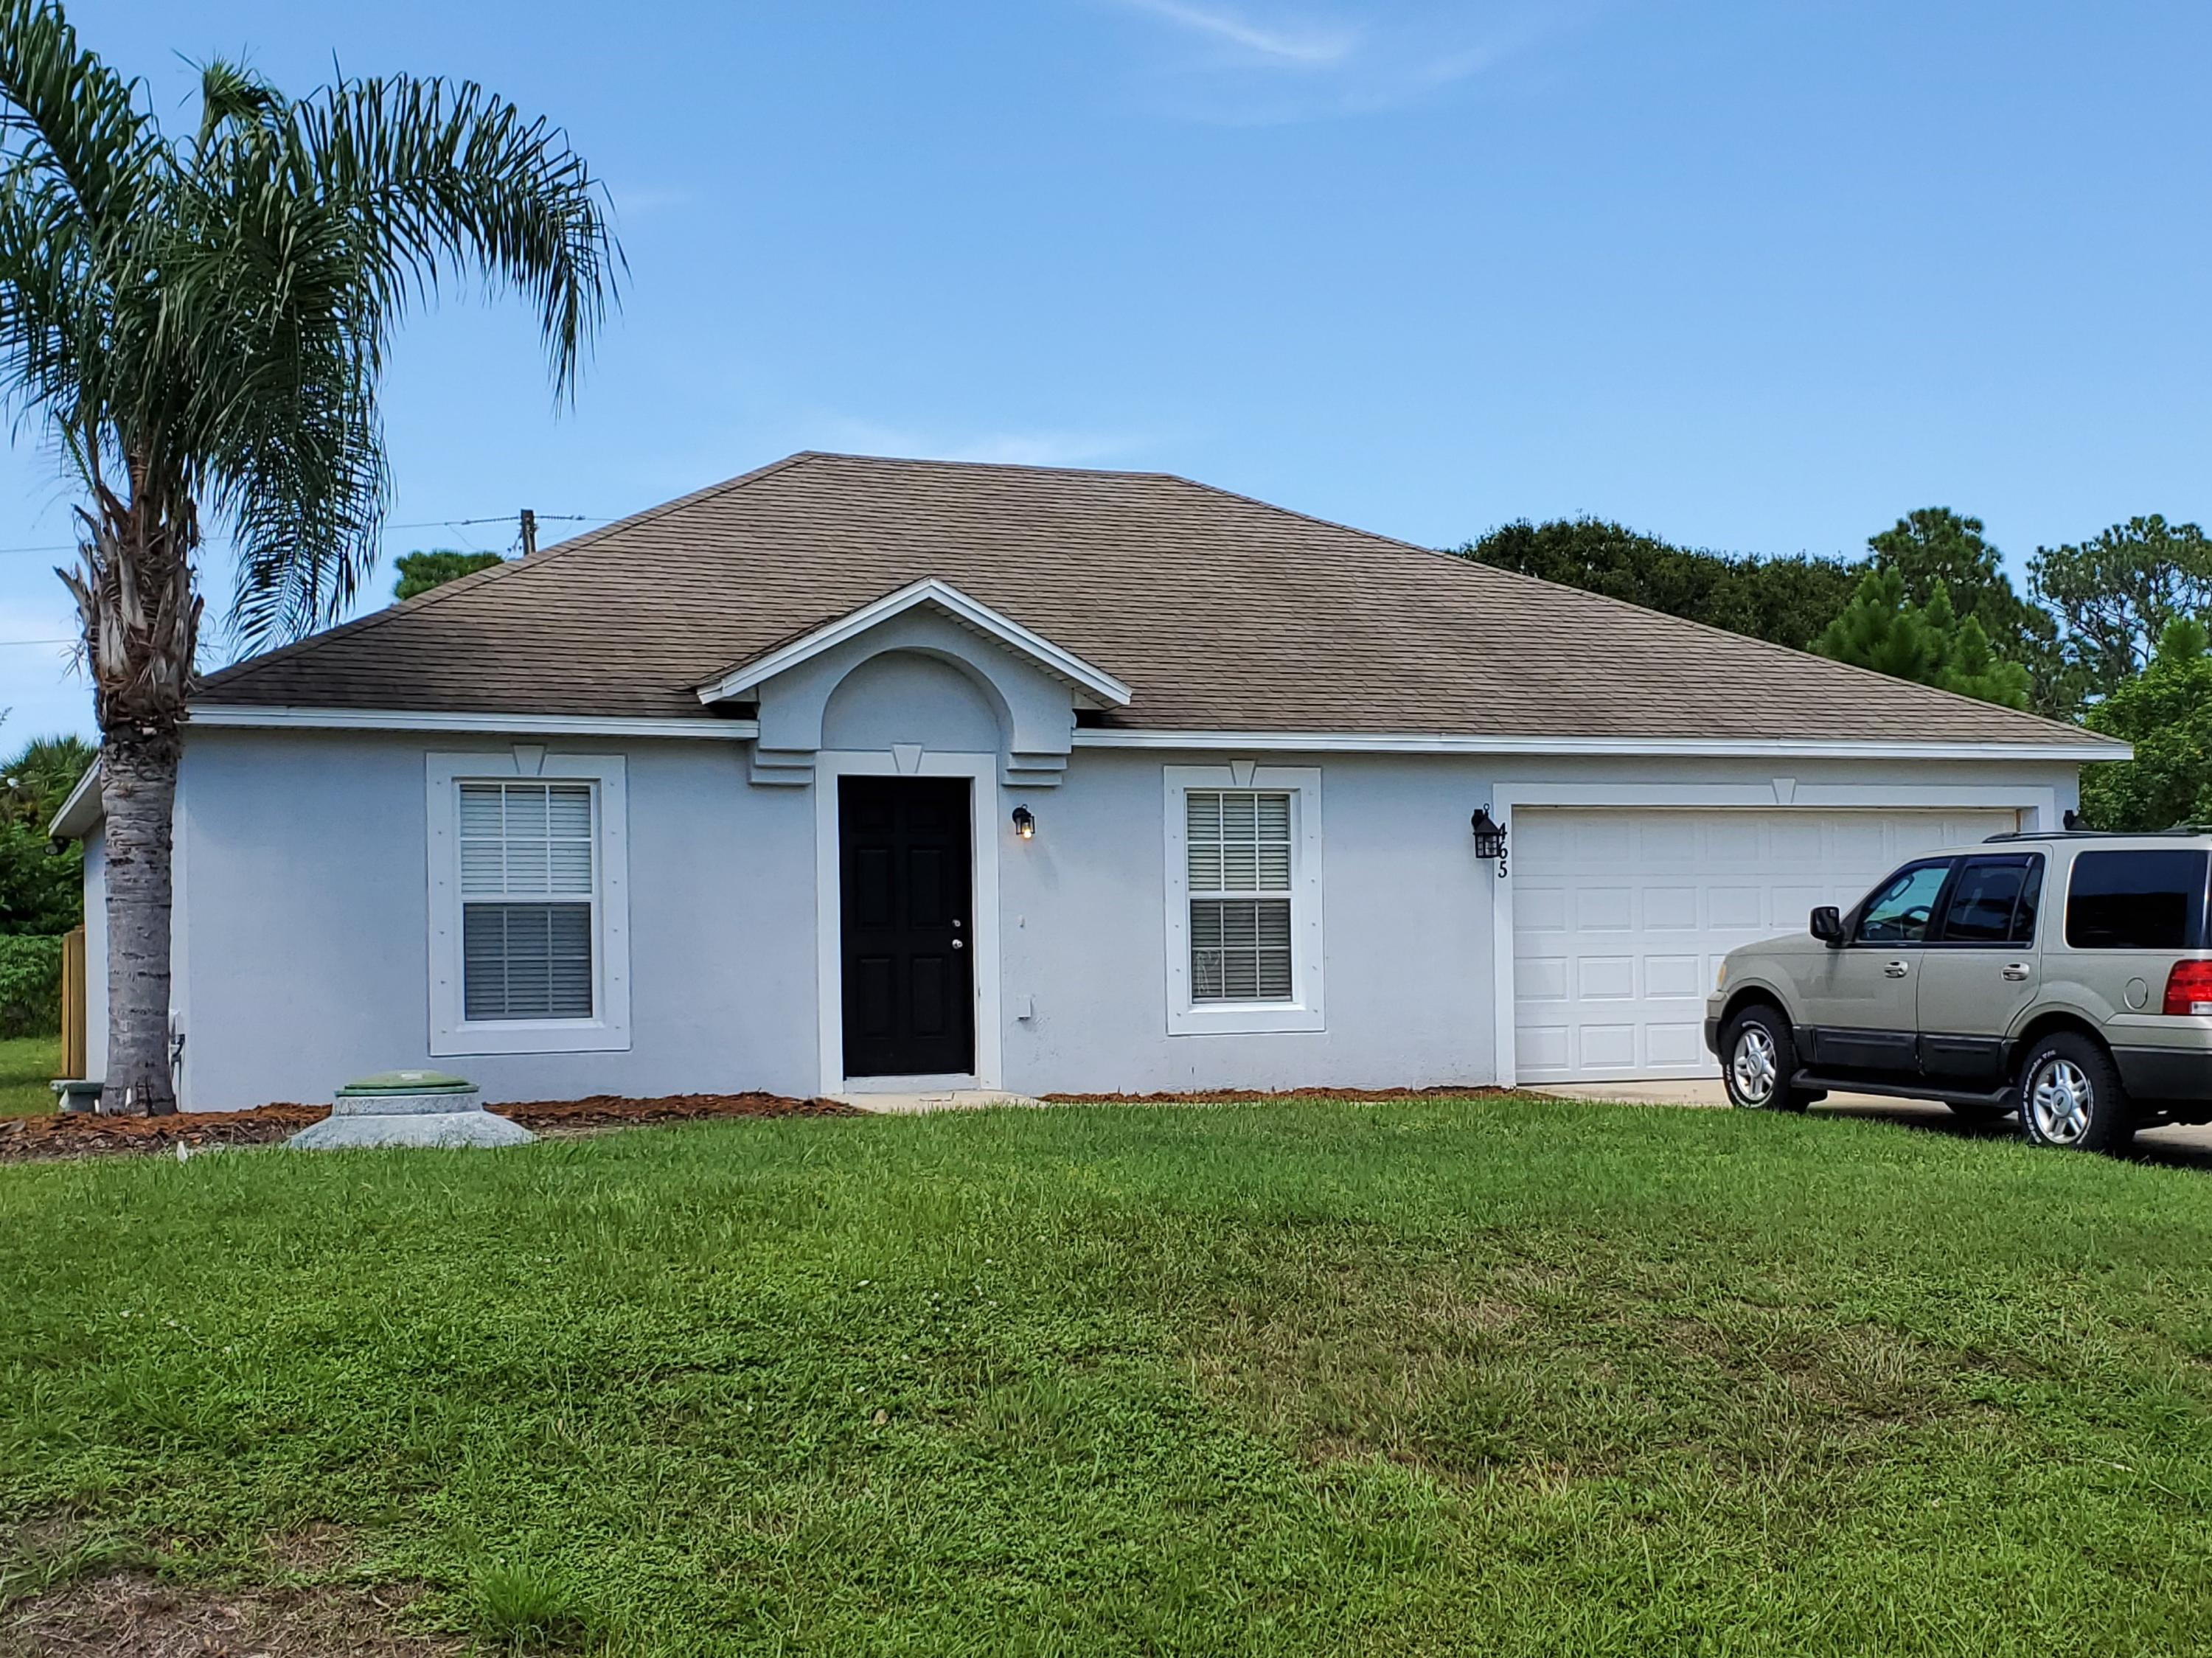 465 Truman Street SW, Palm Bay, Florida